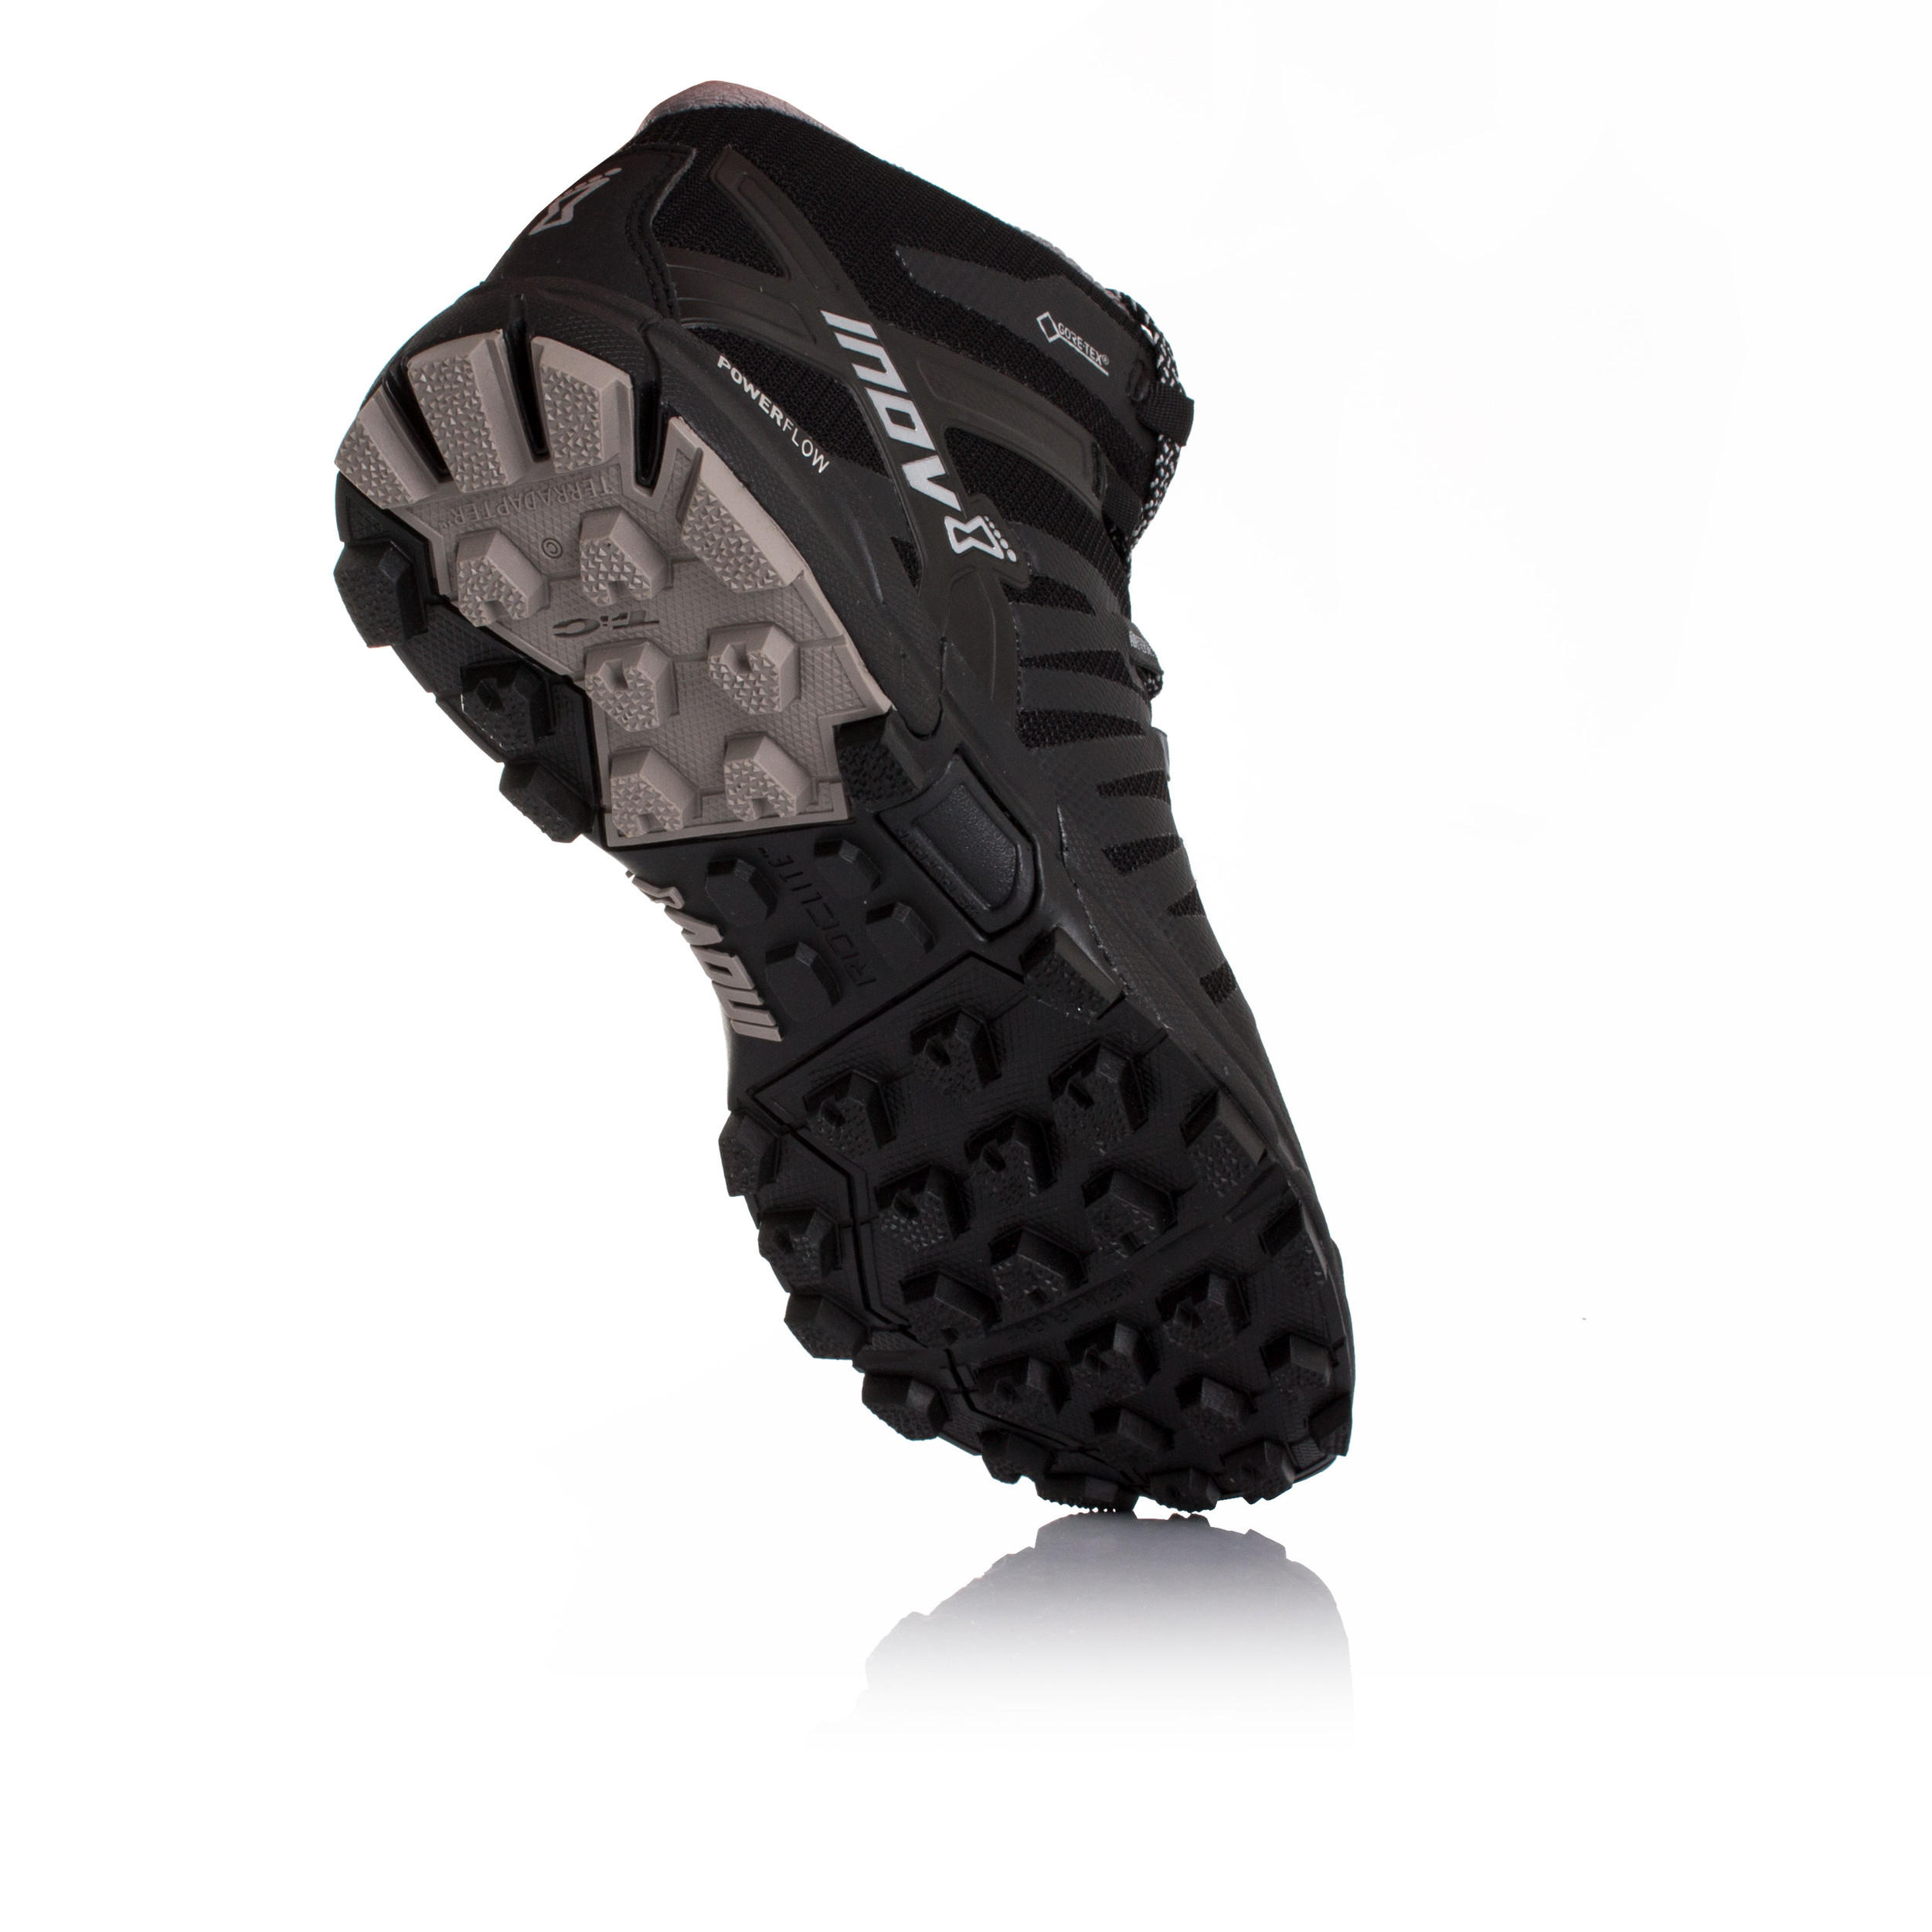 Inov8-Roclite-325-Mens-Black-Waterproof-Gore-Tex-Running-Sports-Shoes-Trainers thumbnail 10